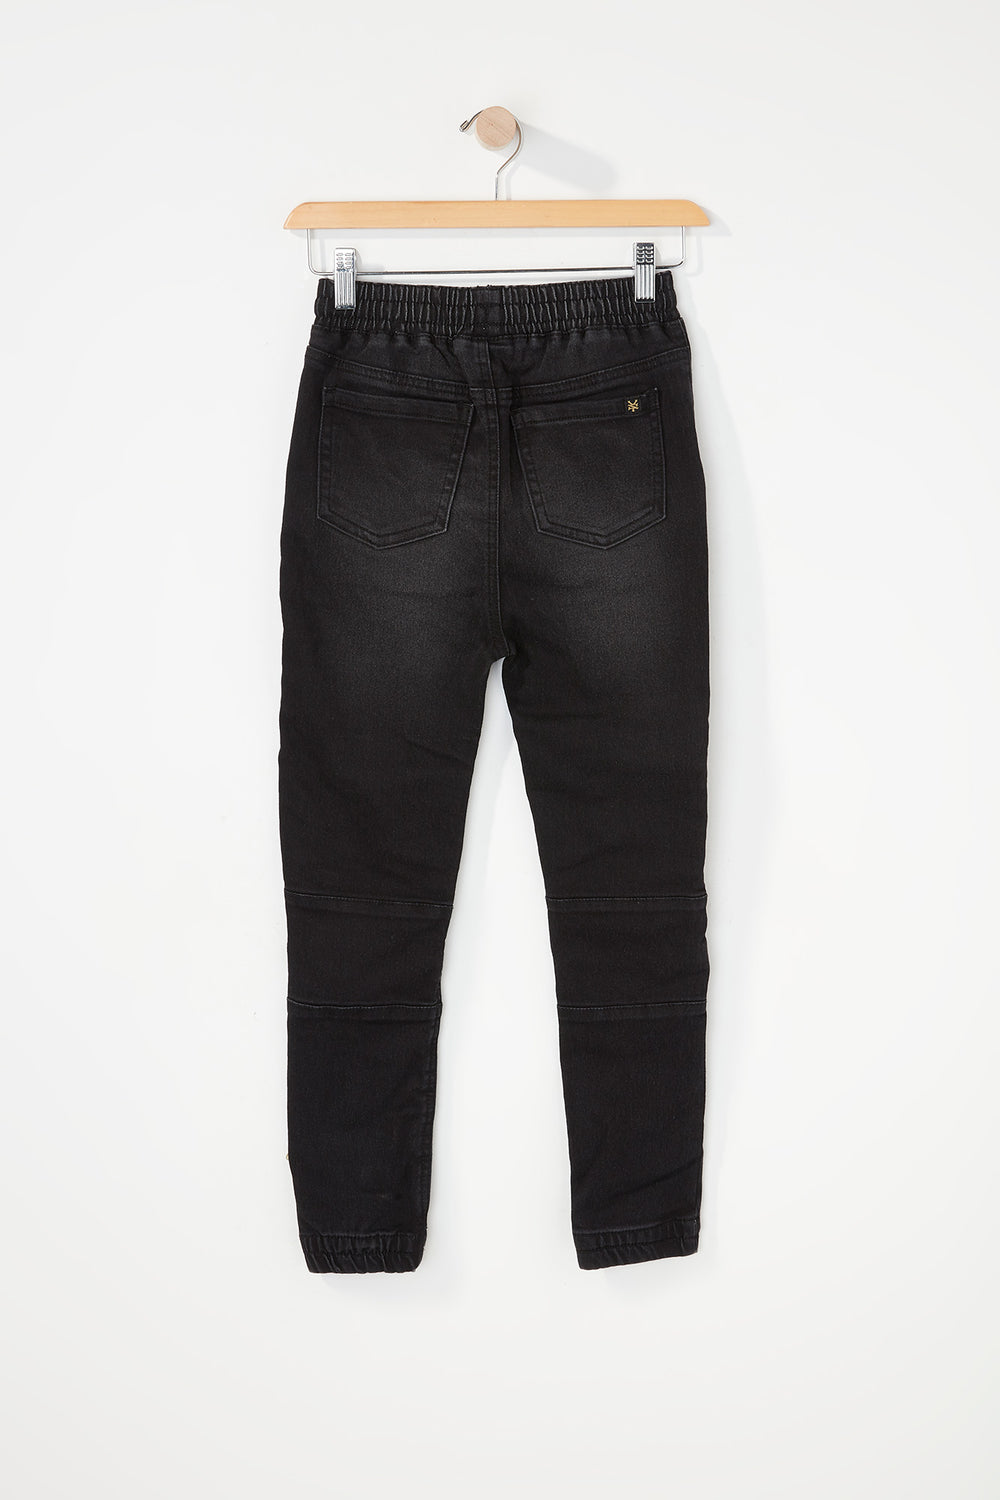 Zoo York Boys 5-Pocket Moto Acid Wash Jogger Jean Black